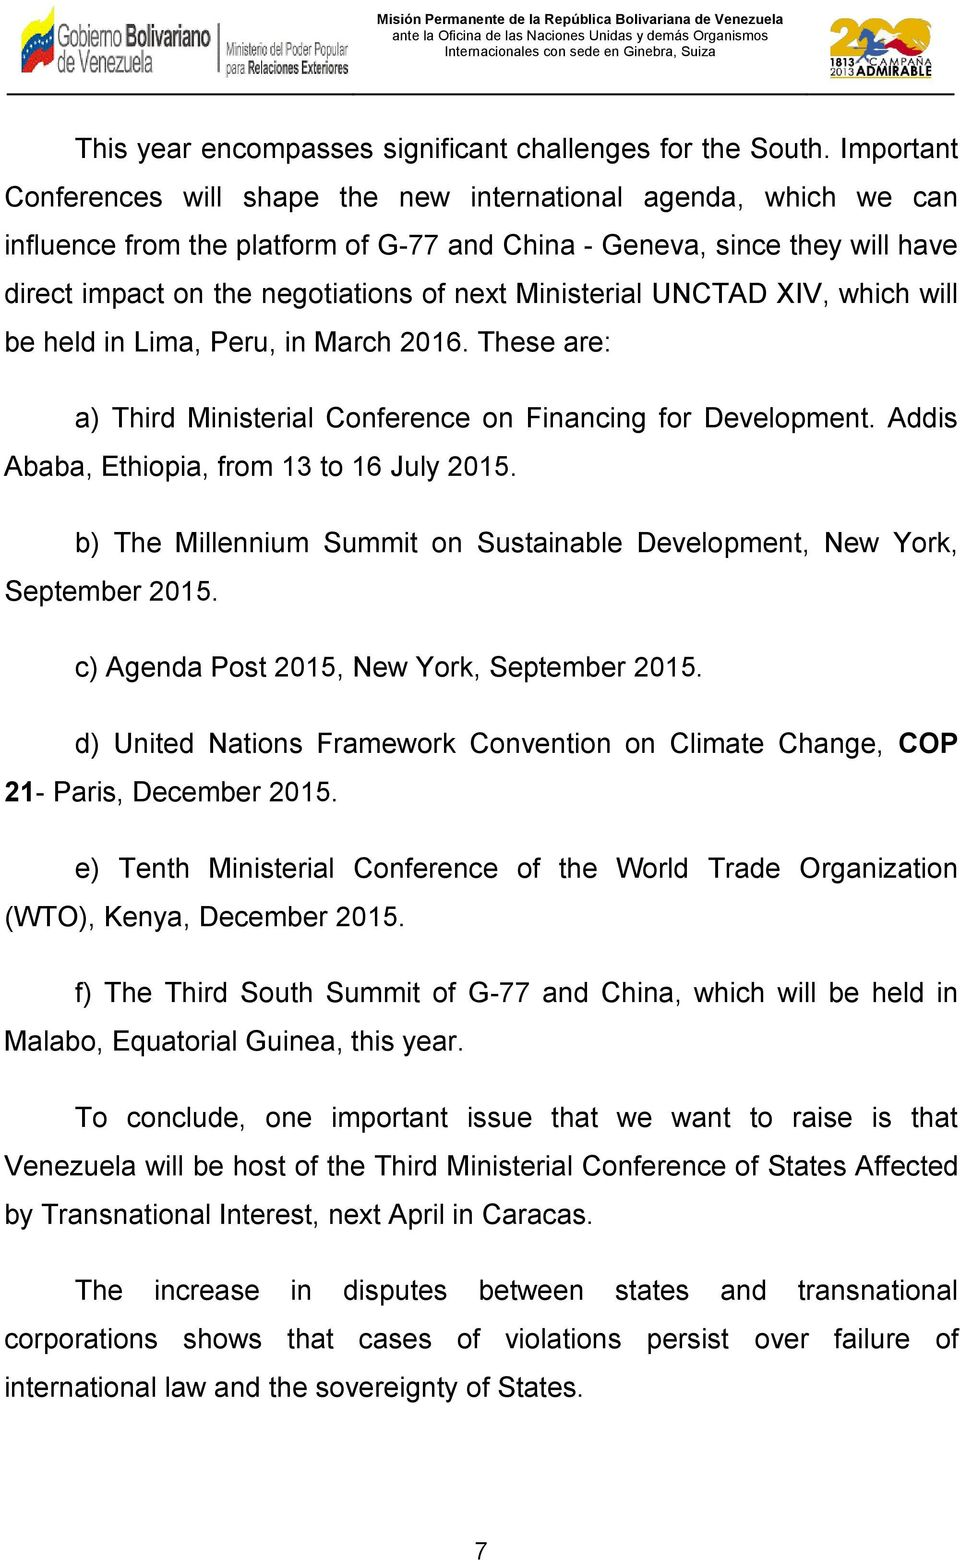 Ministerial UNCTAD XIV, which will be held in Lima, Peru, in March 2016. These are: a) Third Ministerial Conference on Financing for Development. Addis Ababa, Ethiopia, from 13 to 16 July 2015.